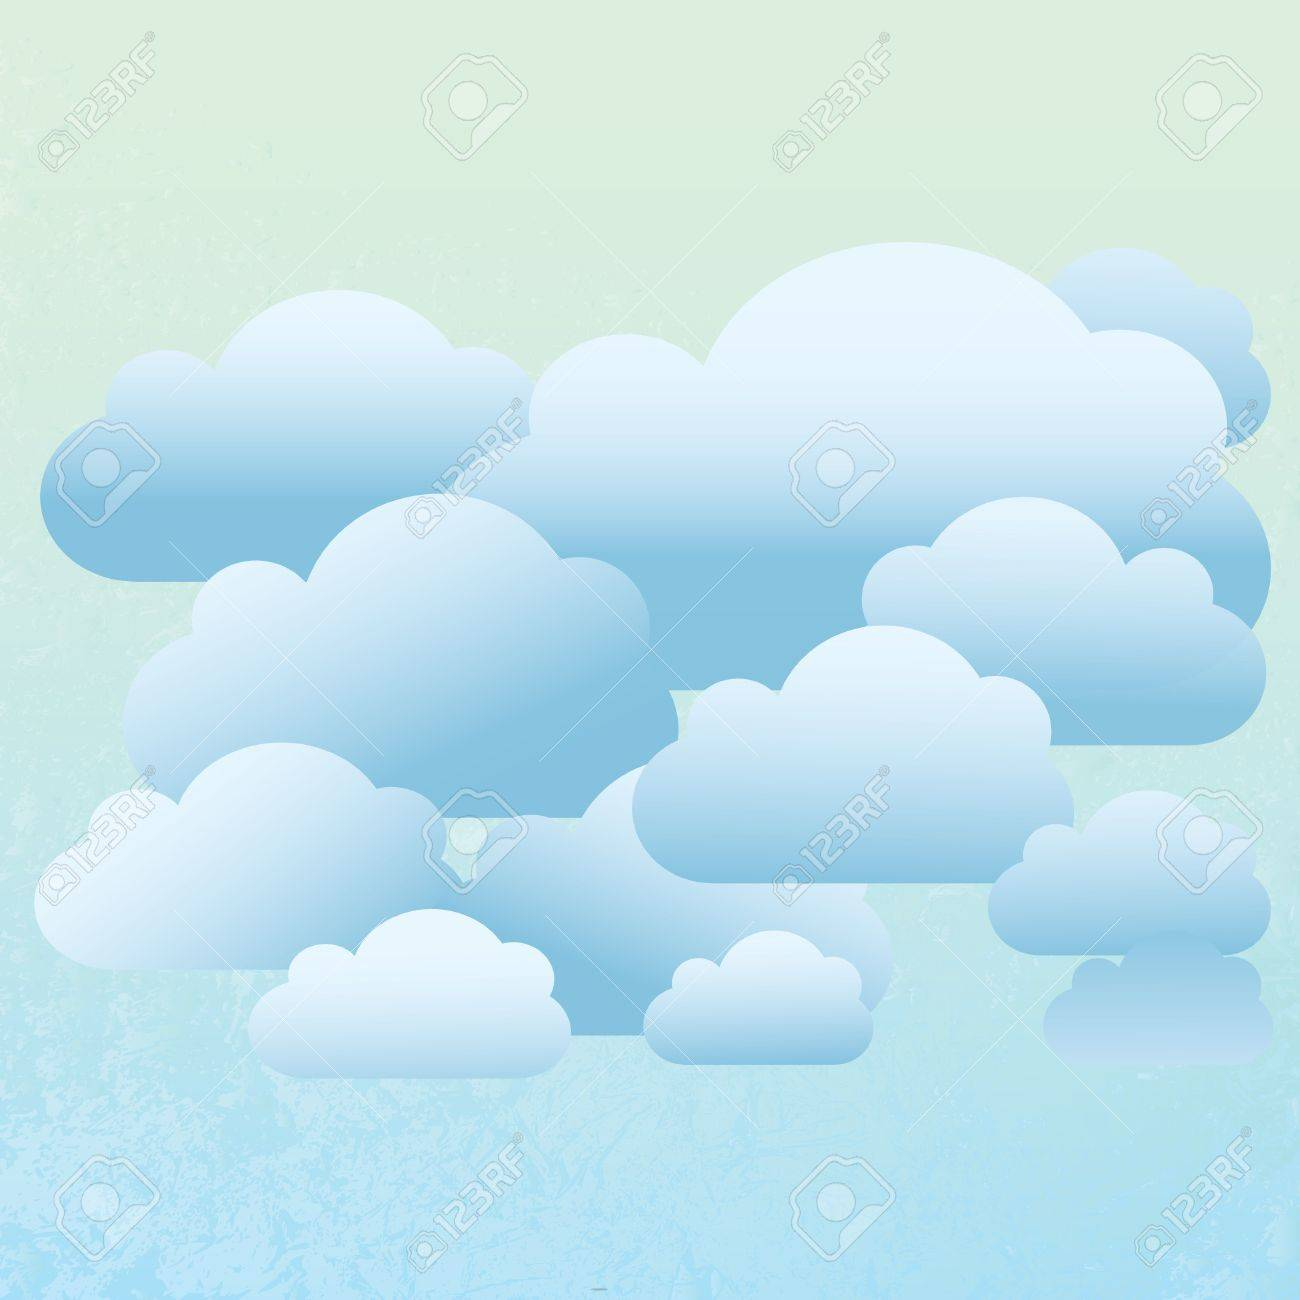 Abstract Cloud Background Stock Vector - 15375198